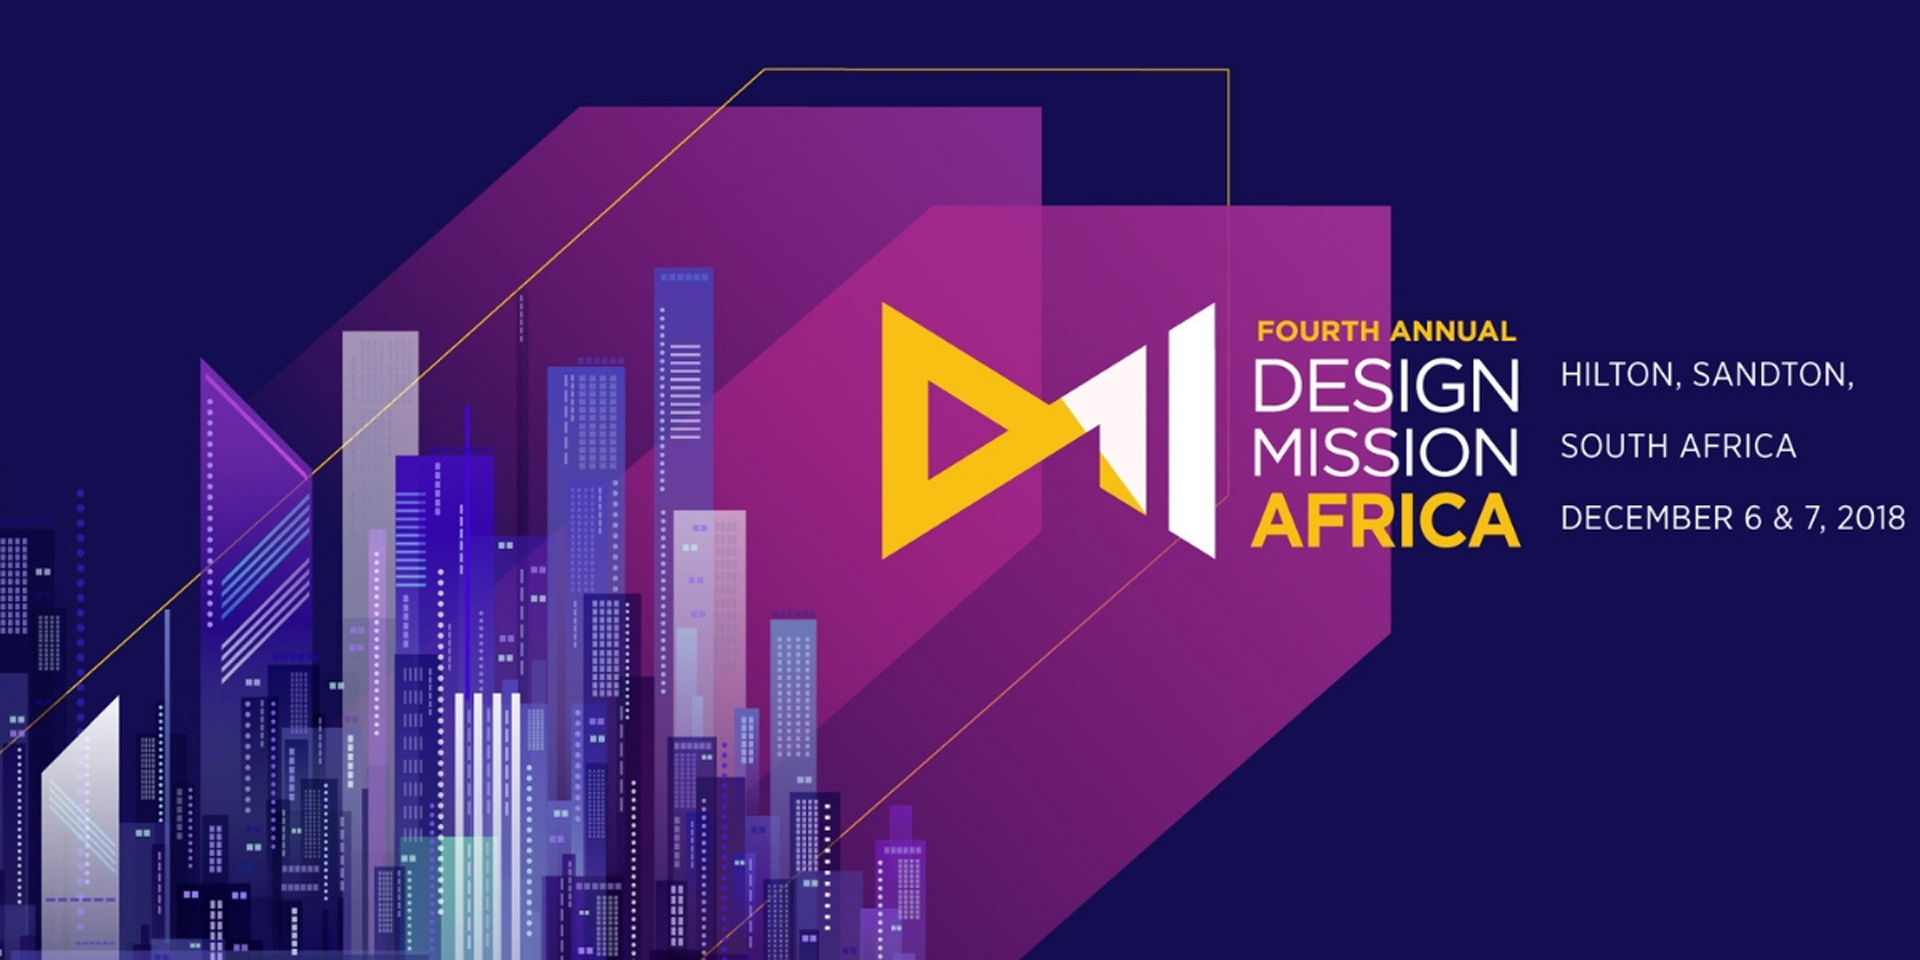 The 4th Annual Design Mission Africa Summit is set to be held on 7th December, 2018, at the Hilton Sandton, Johannesburg, South Africa